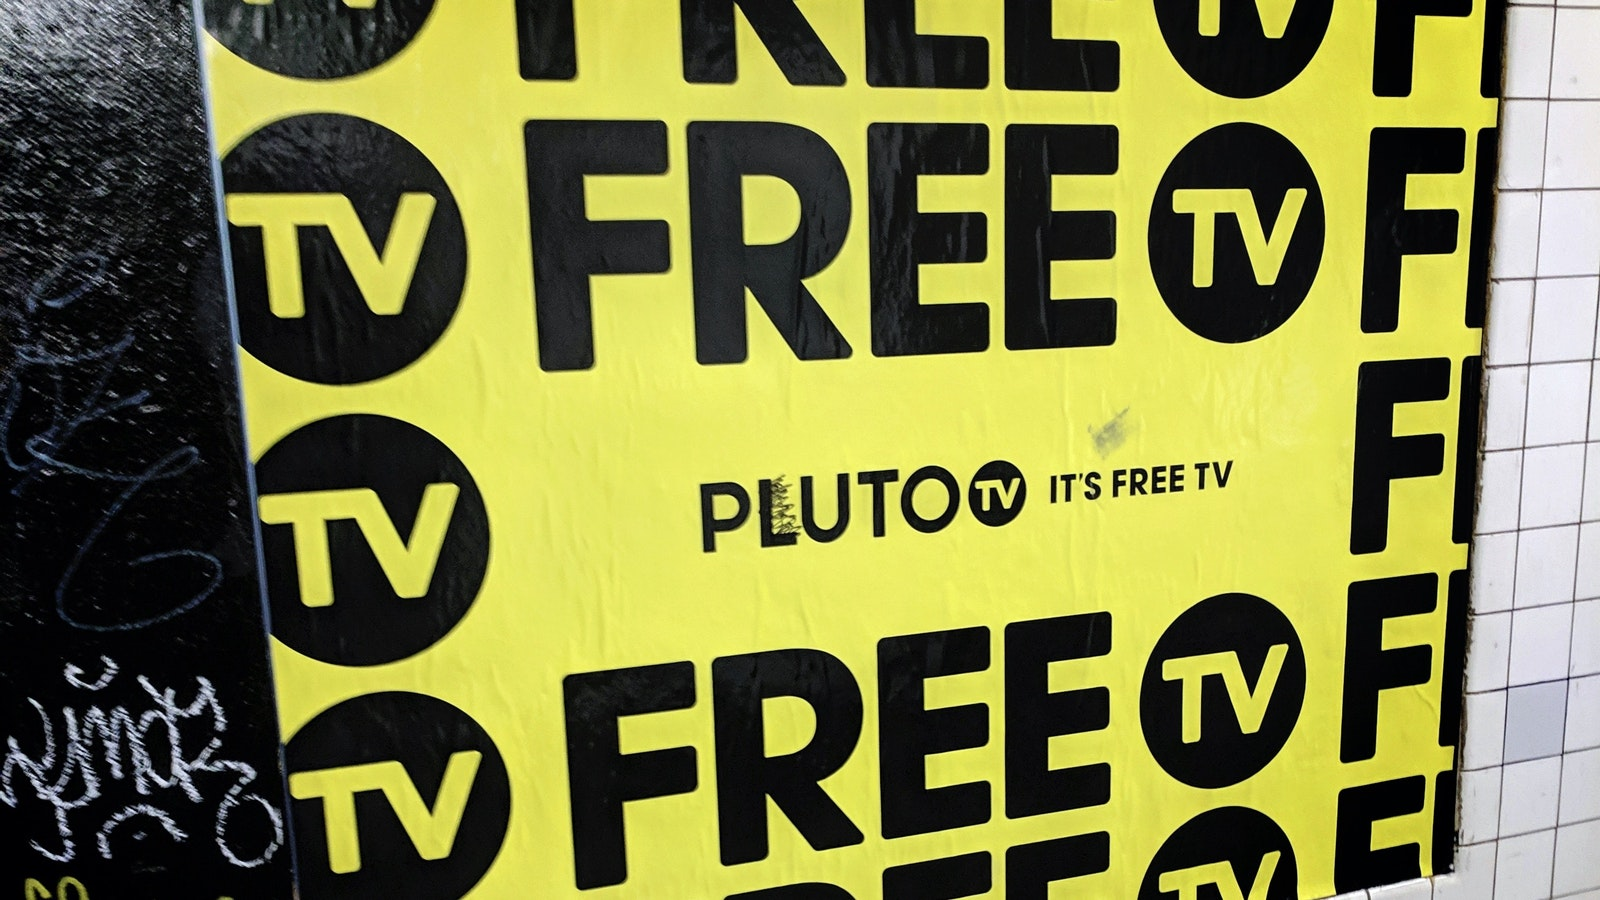 An ad for Viacom's Pluto TV service on a New York subway wall earlier this year. Photo by AP